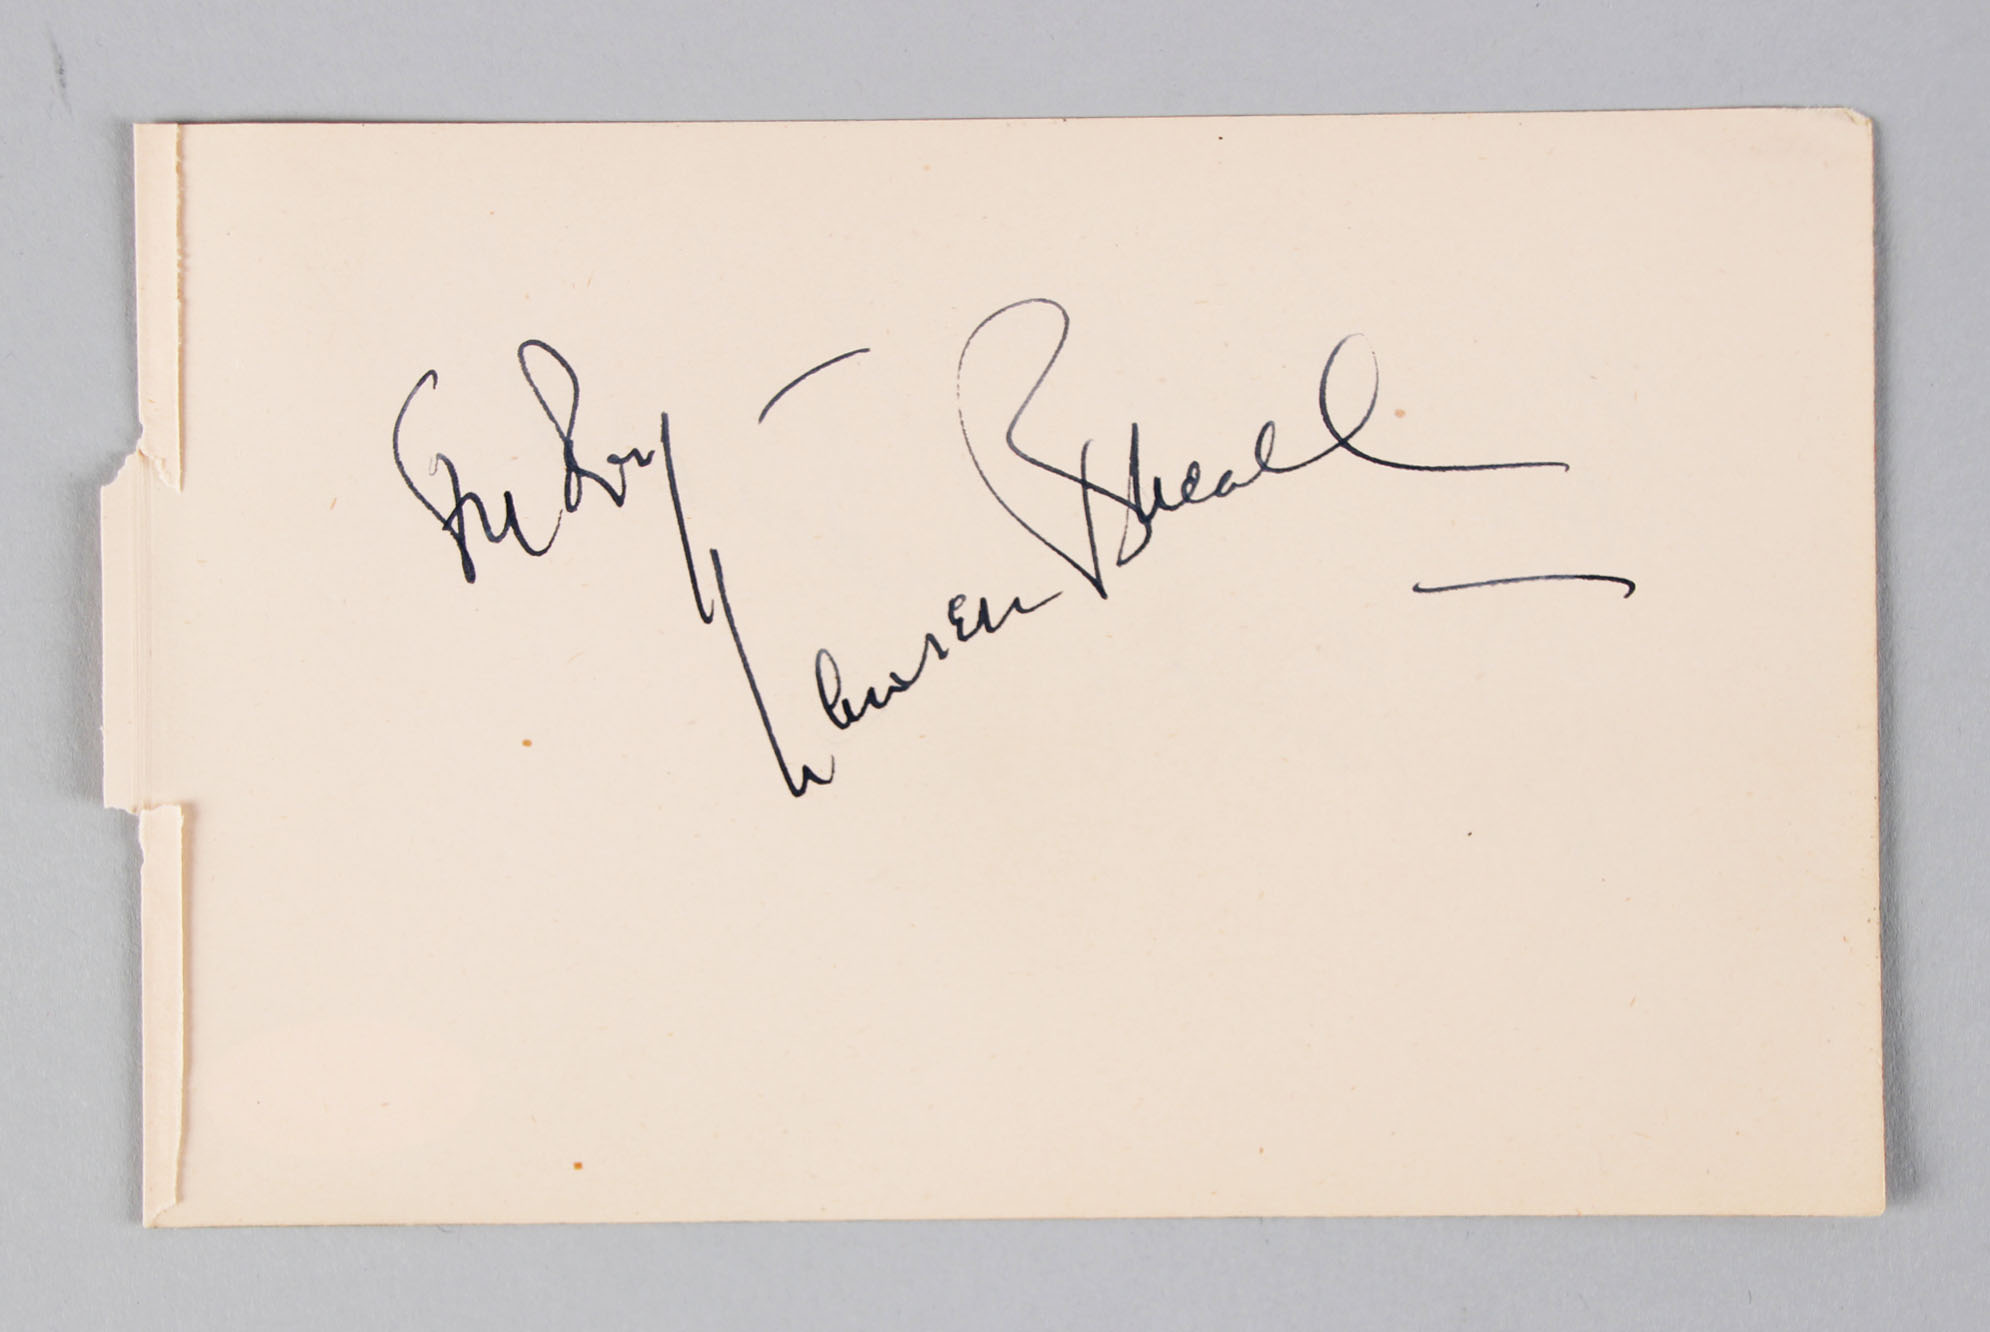 Woman of the Year - Lauren Bacall Signed 4x6 Vintage Album Page - COA JSA